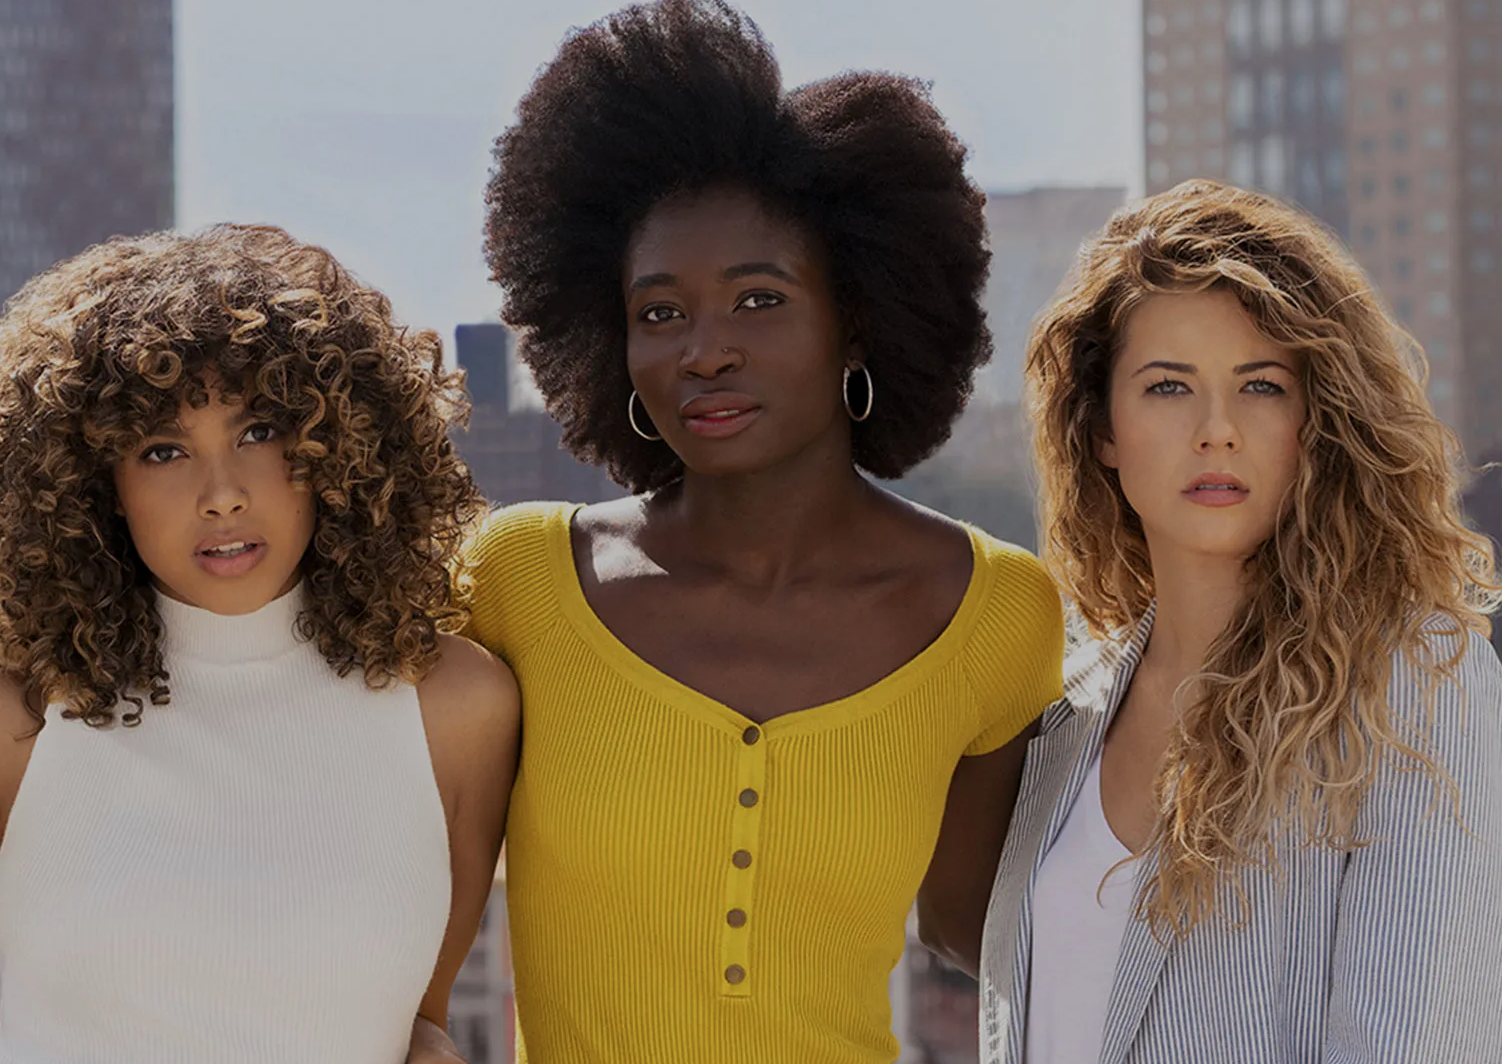 Three curly-haired models pose in an advertisement for DevaCurl.